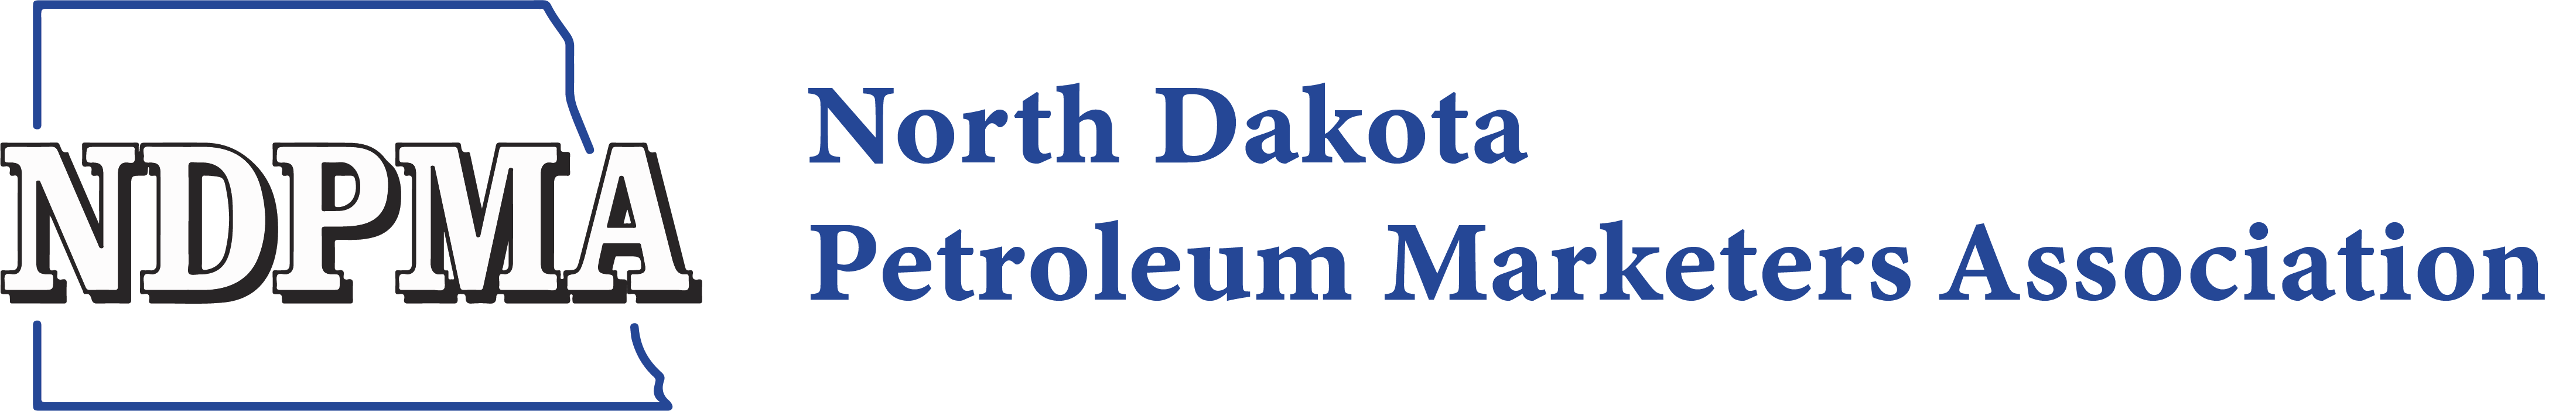 North Dakota Petroleum Marketers Association